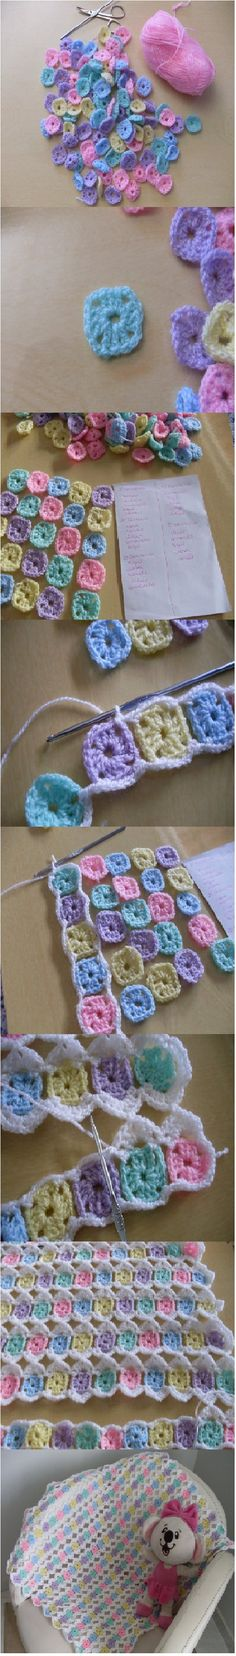 the cutest way ever to end you left-over yarn : the One-Round Granny crochet blanket! ****Looks like inside of granny square...then sc in corner, ch 3, sc corner to join in strips....then the granny square corner..3 dc, ch 1, 3dc...and used the ch 1 to join strips together? Not sure though....going to have to figure this one out...since it's picture only and no instructions :(